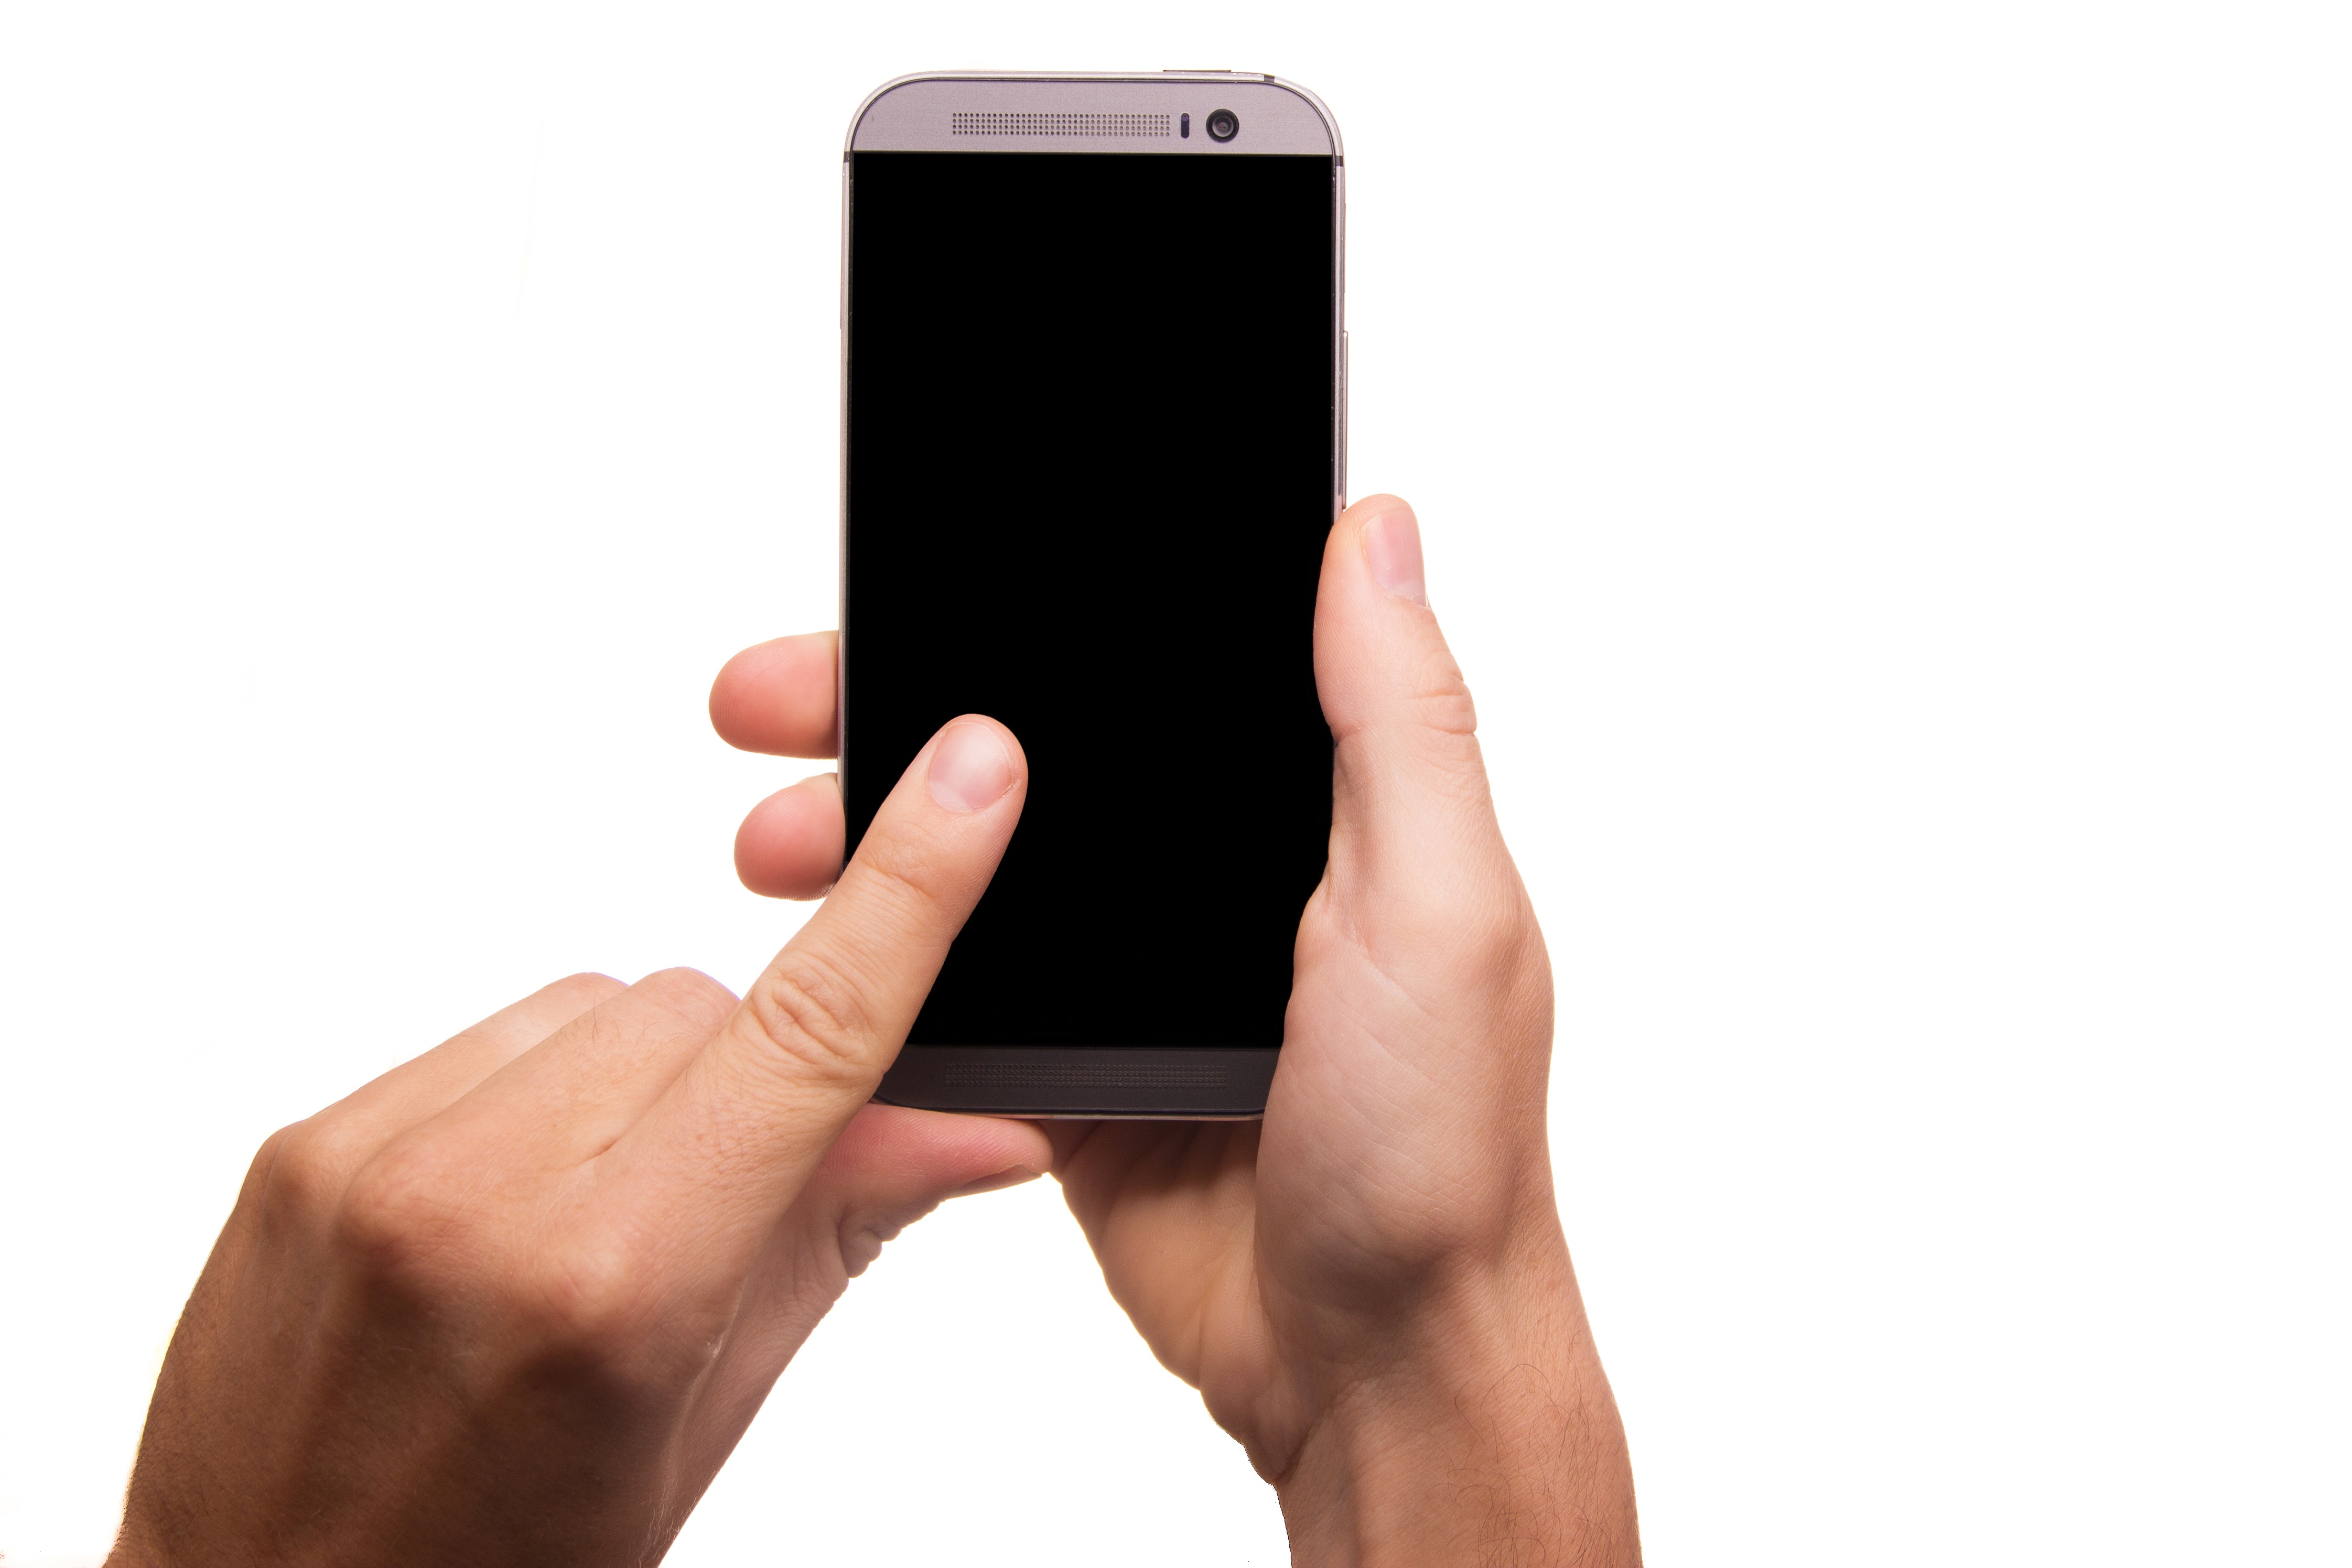 Your smartphone can be used to view oximetry test results.